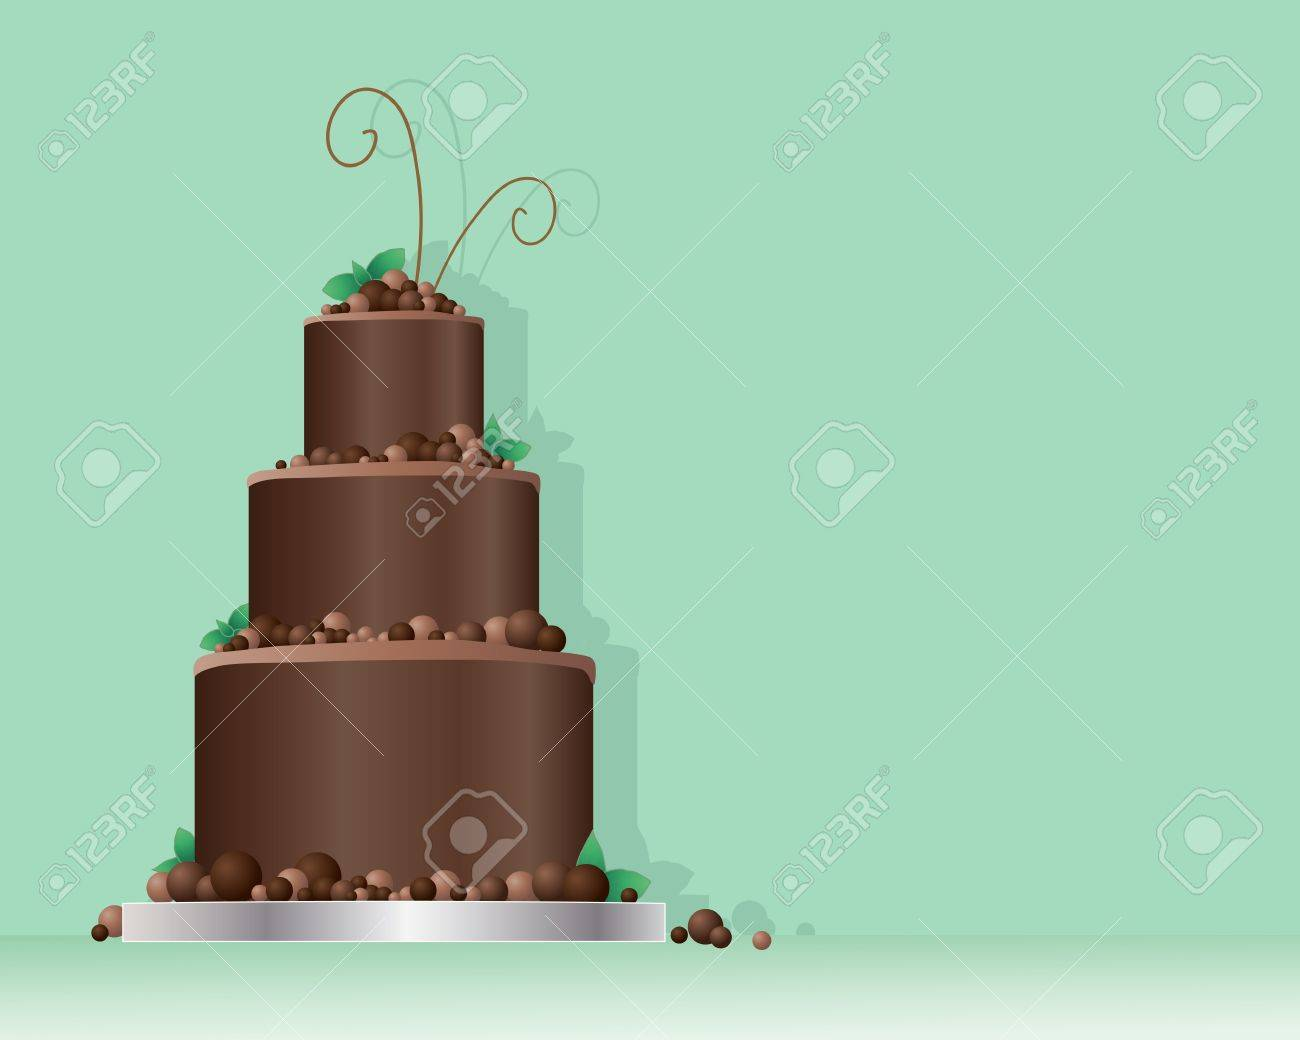 an illustration of a celebration cake in a contemporary design with chocolate balls and mint leaves on a minty green background with space for text Stock Vector - 19087213